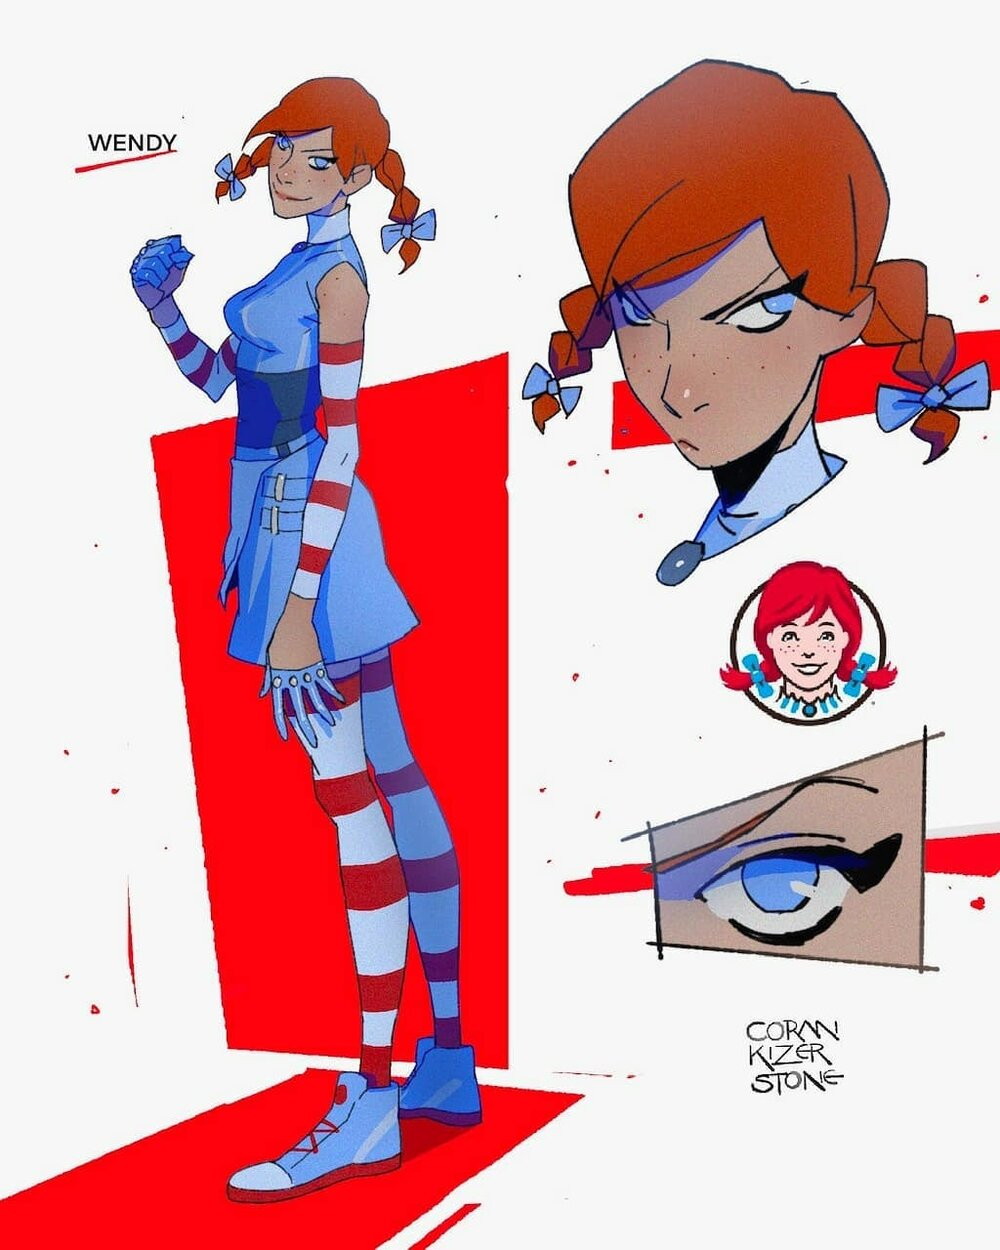 fast-food-mascots-redesigned-as-badass-animated-style-characters3.jpg